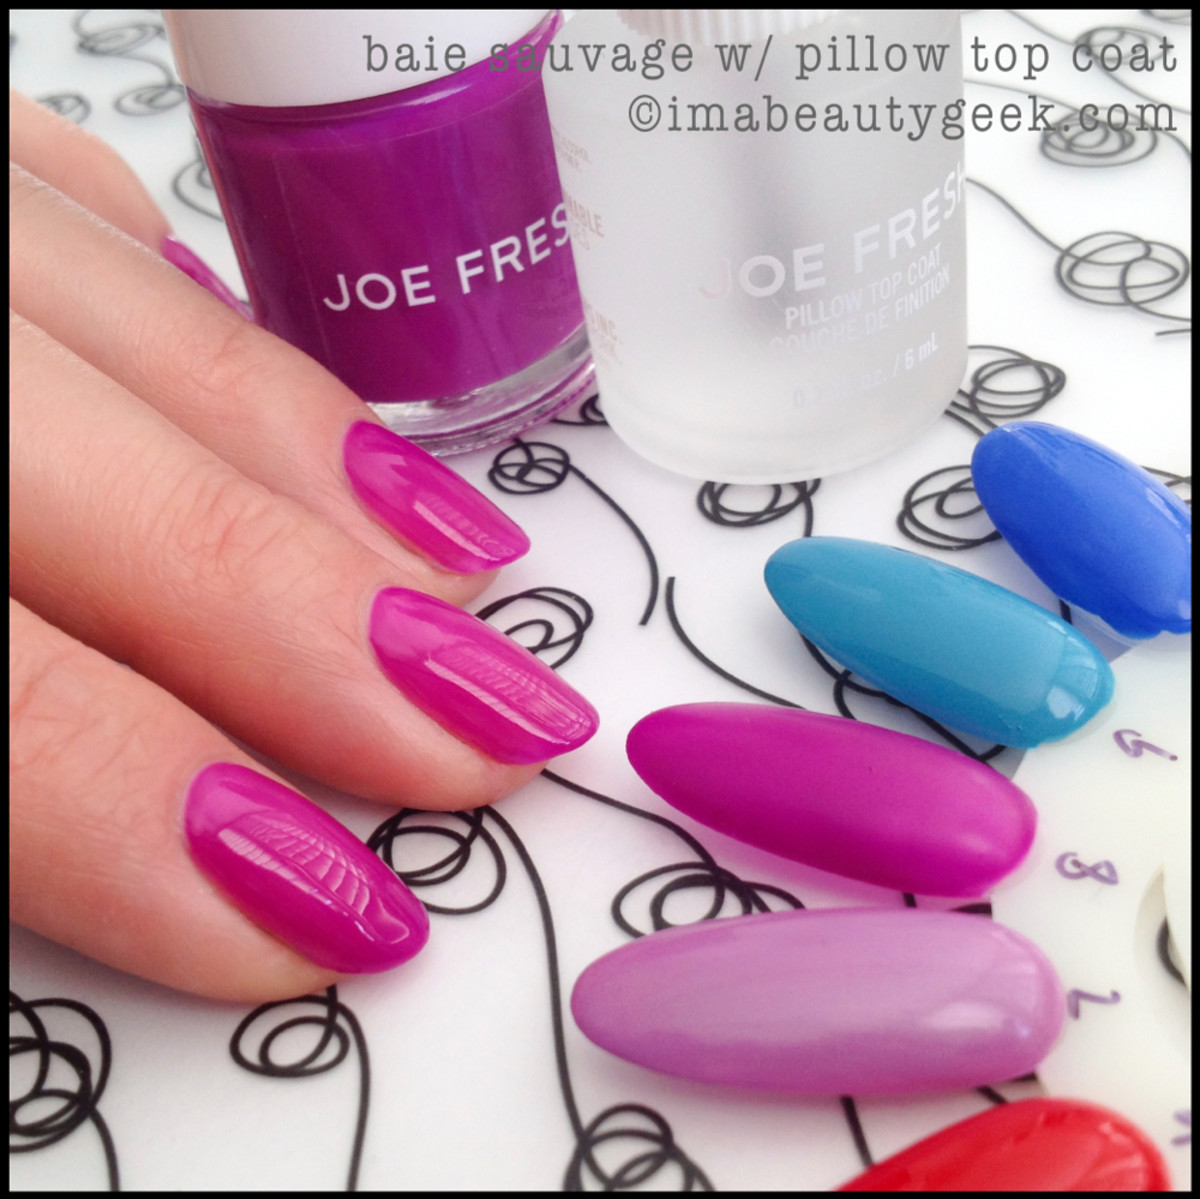 Joe Fresh Polish Baie Sauvage with Pillow Top Coat